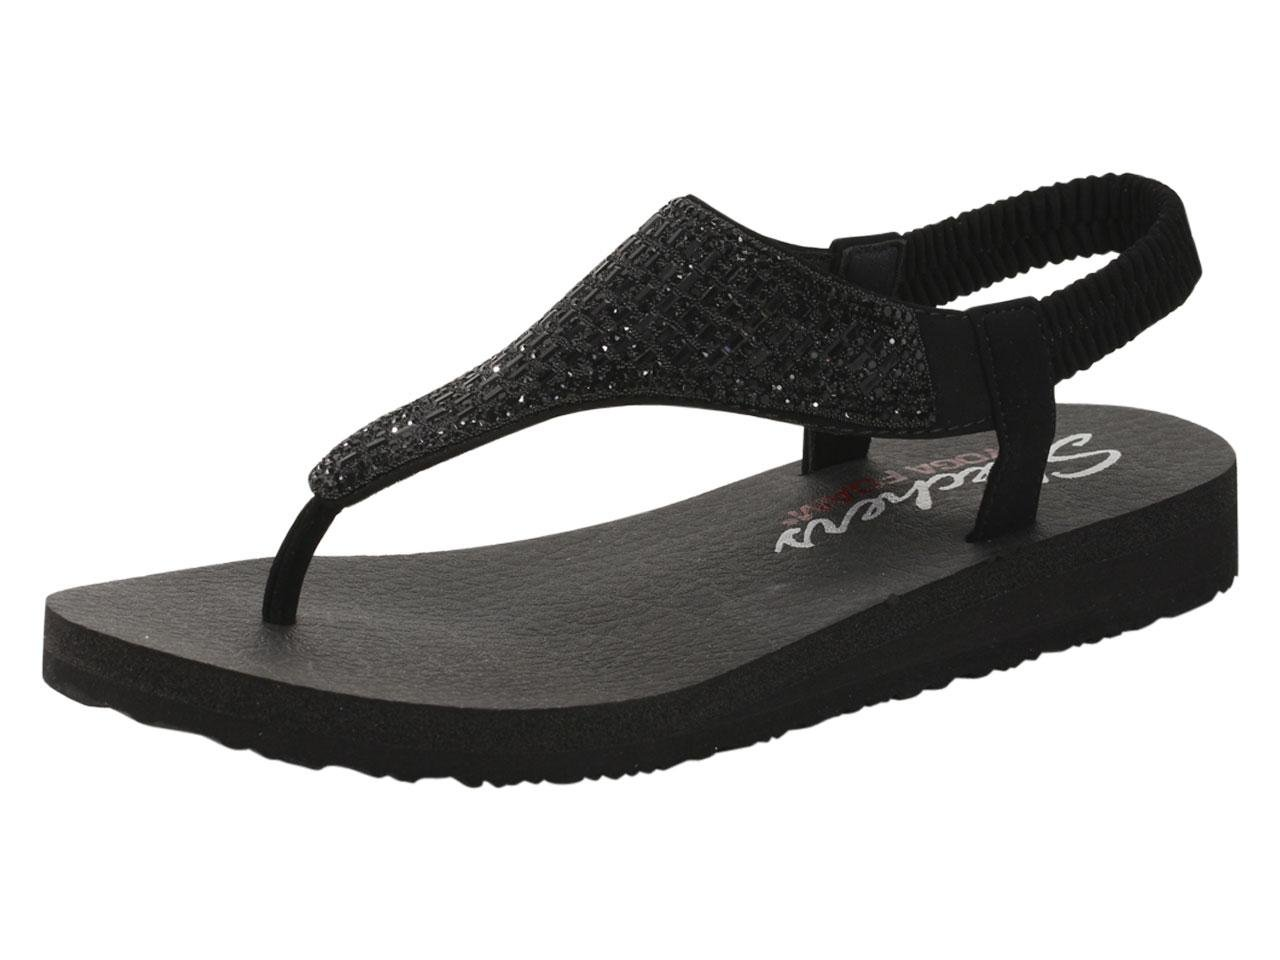 Skechers Cali Meditation Rock Crown Women's Sandal